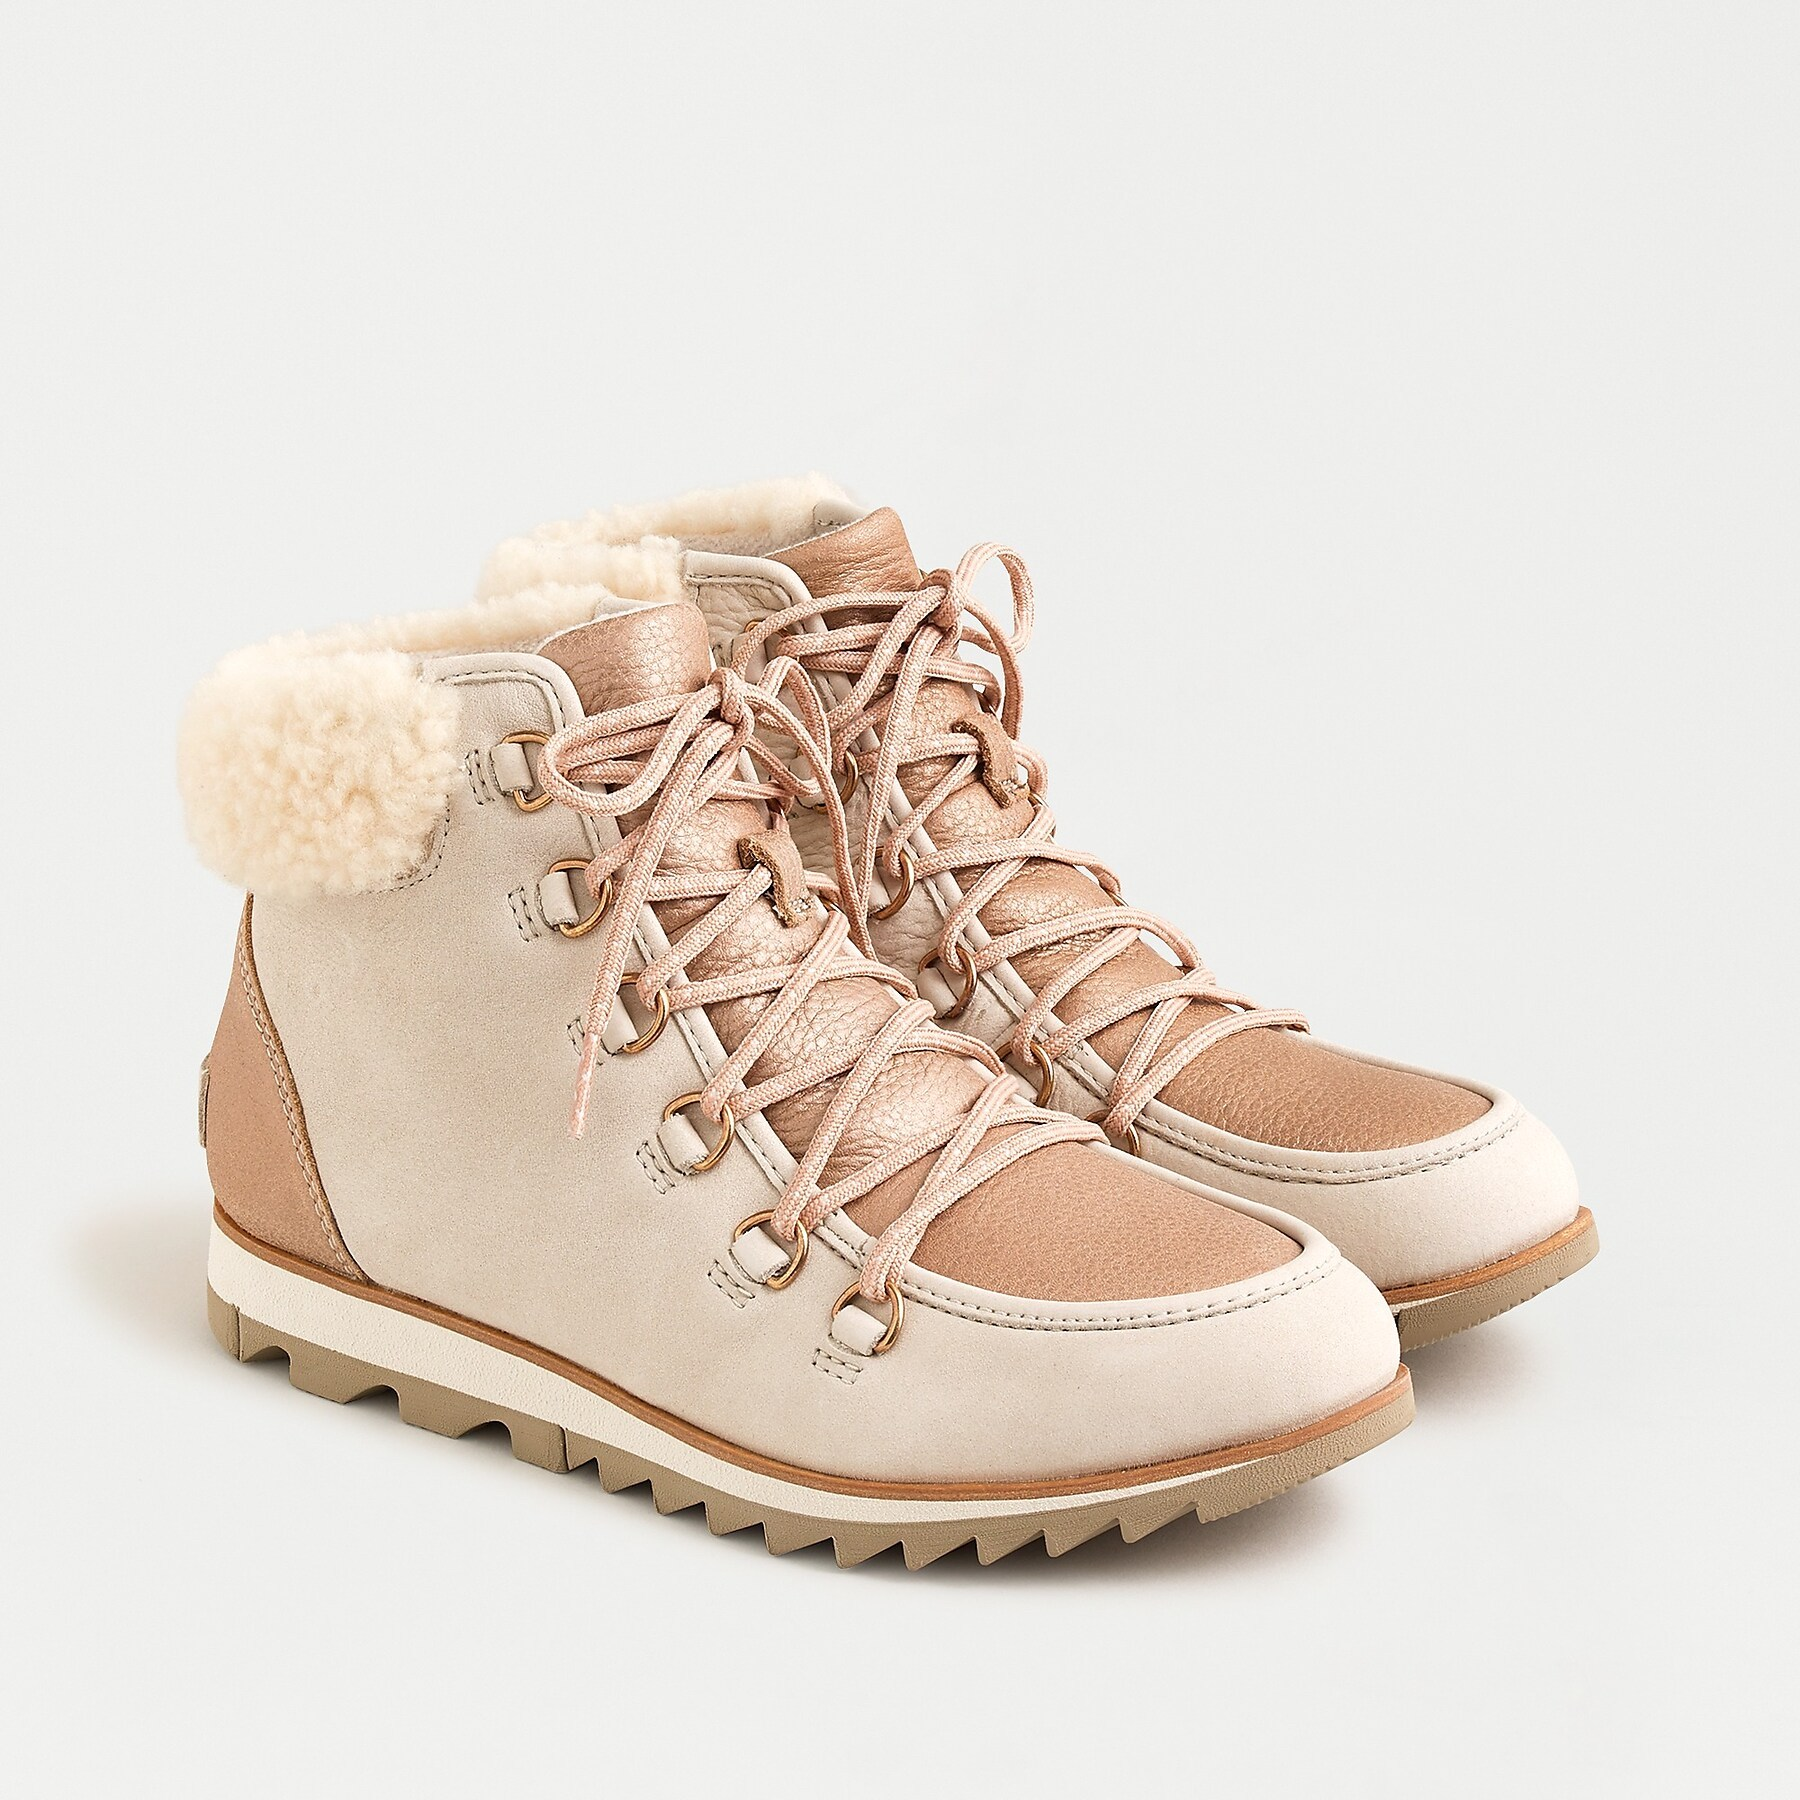 Sorel Harlow Short Lace Boots